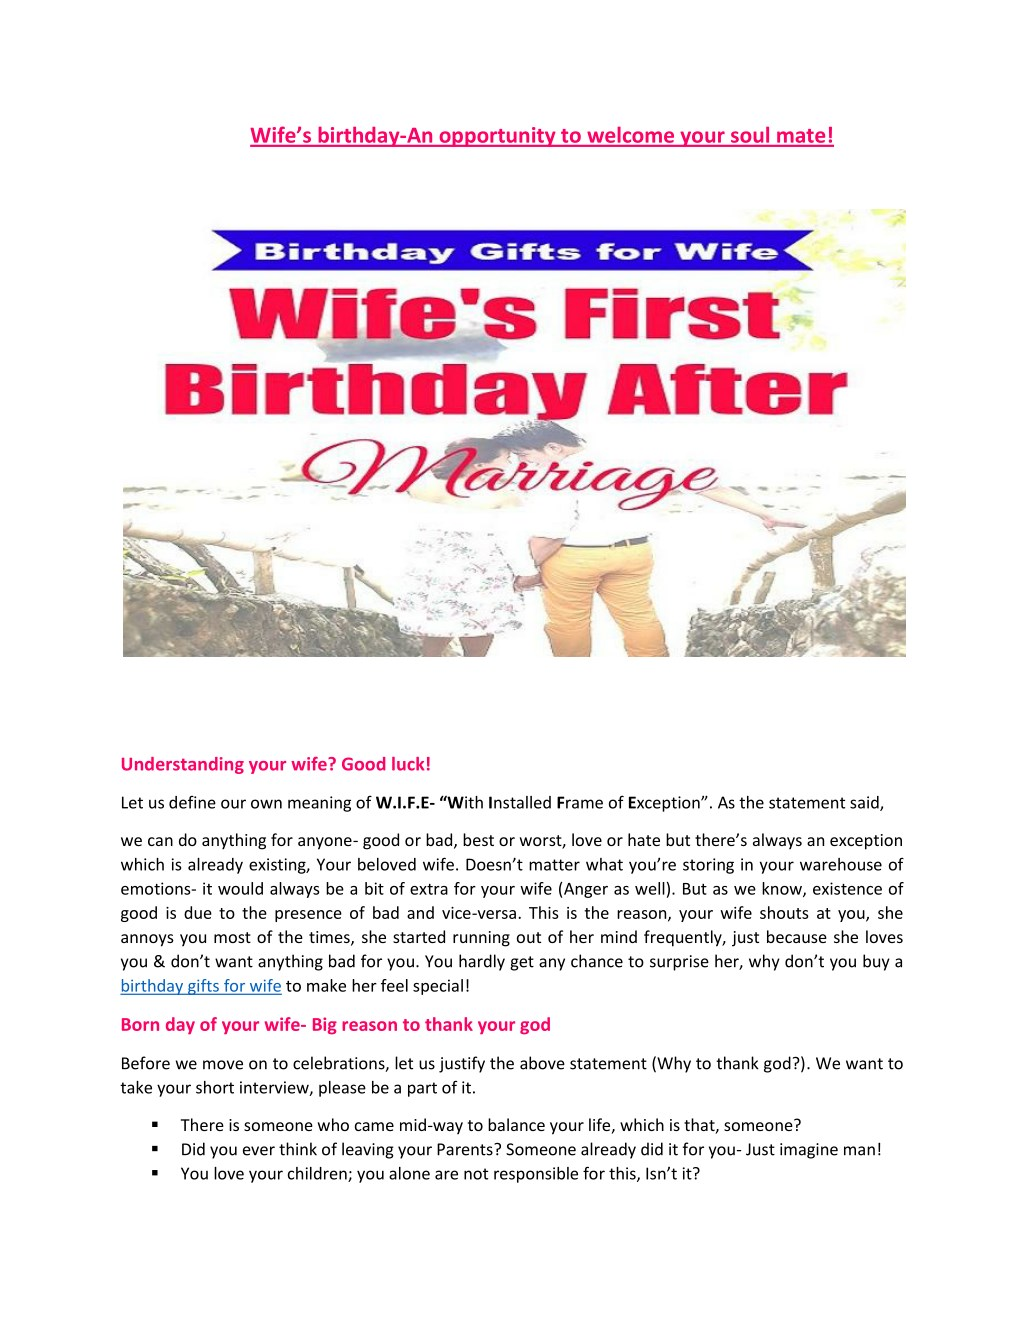 ppt wife s birthday an opportunity to welcome your soul mate